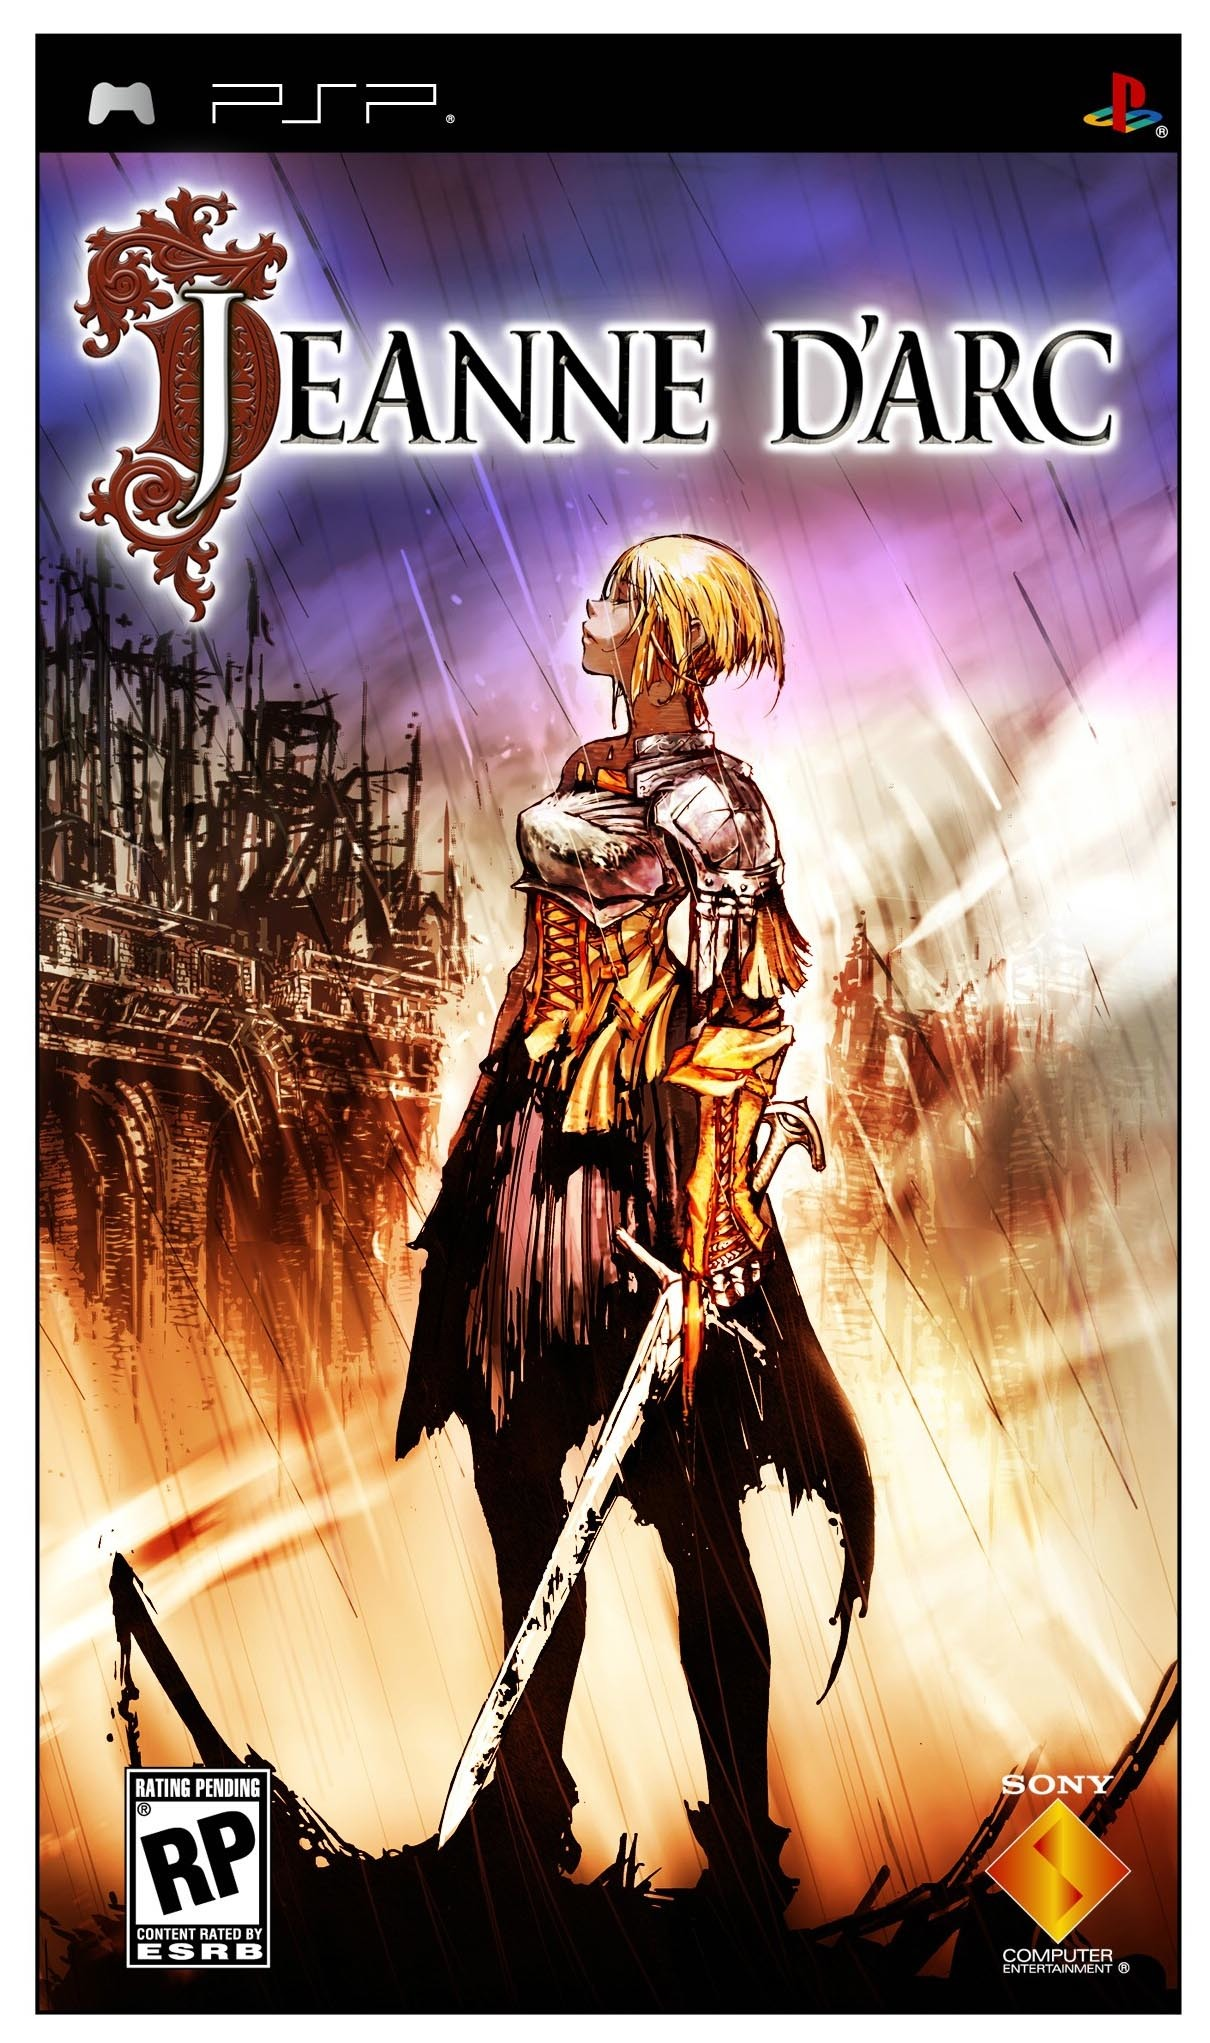 jeanne arc Cover high HD Wallpaper